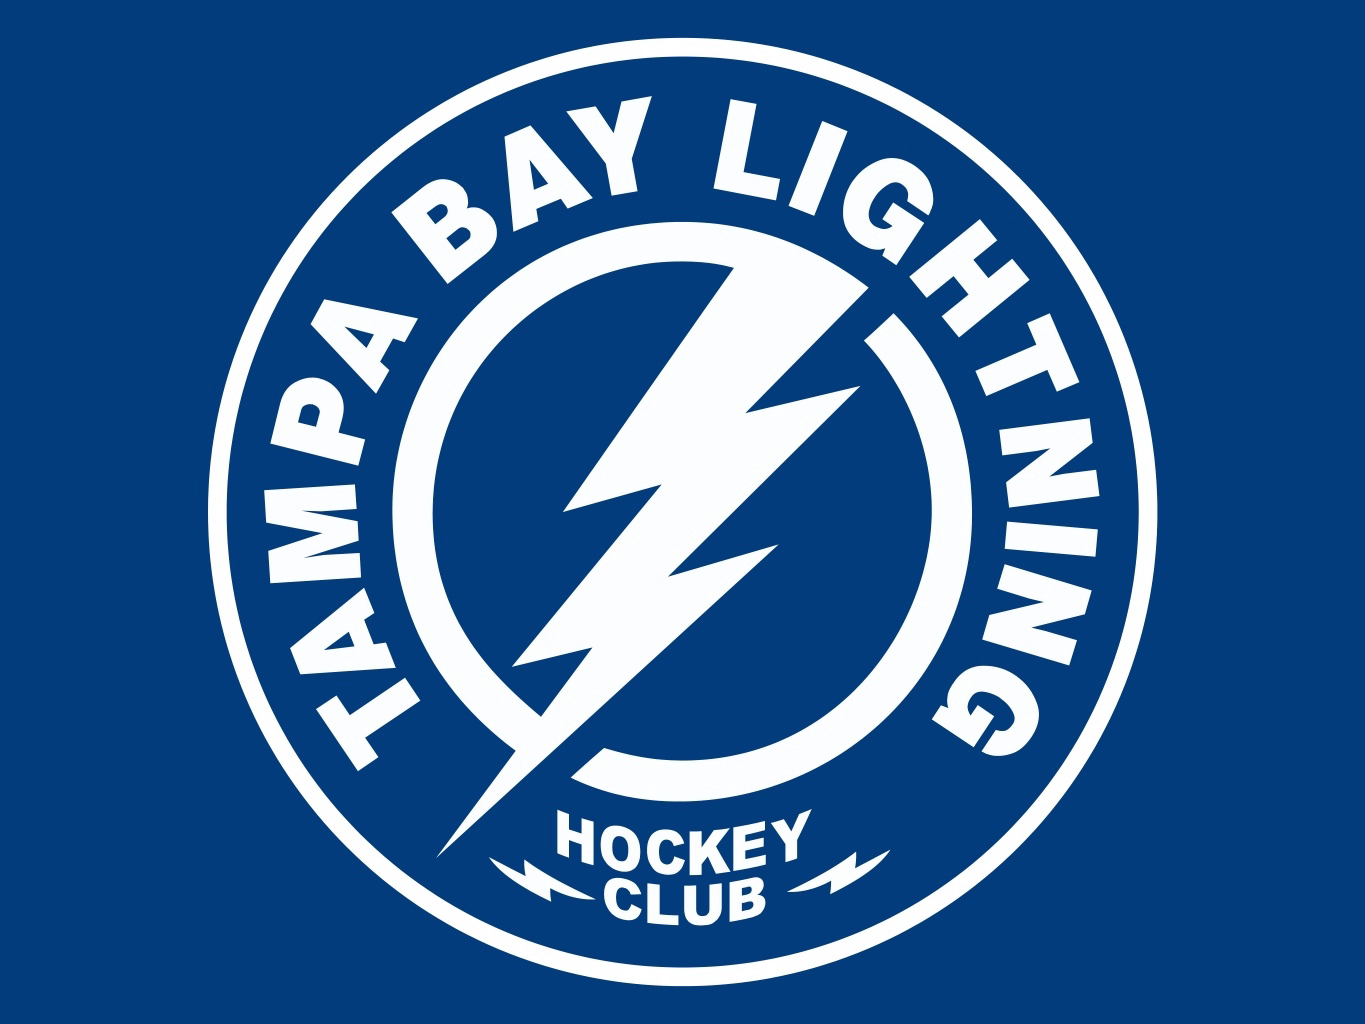 Tampa bay lightning wallpaper and background image - Tampa bay lightning wallpaper ...